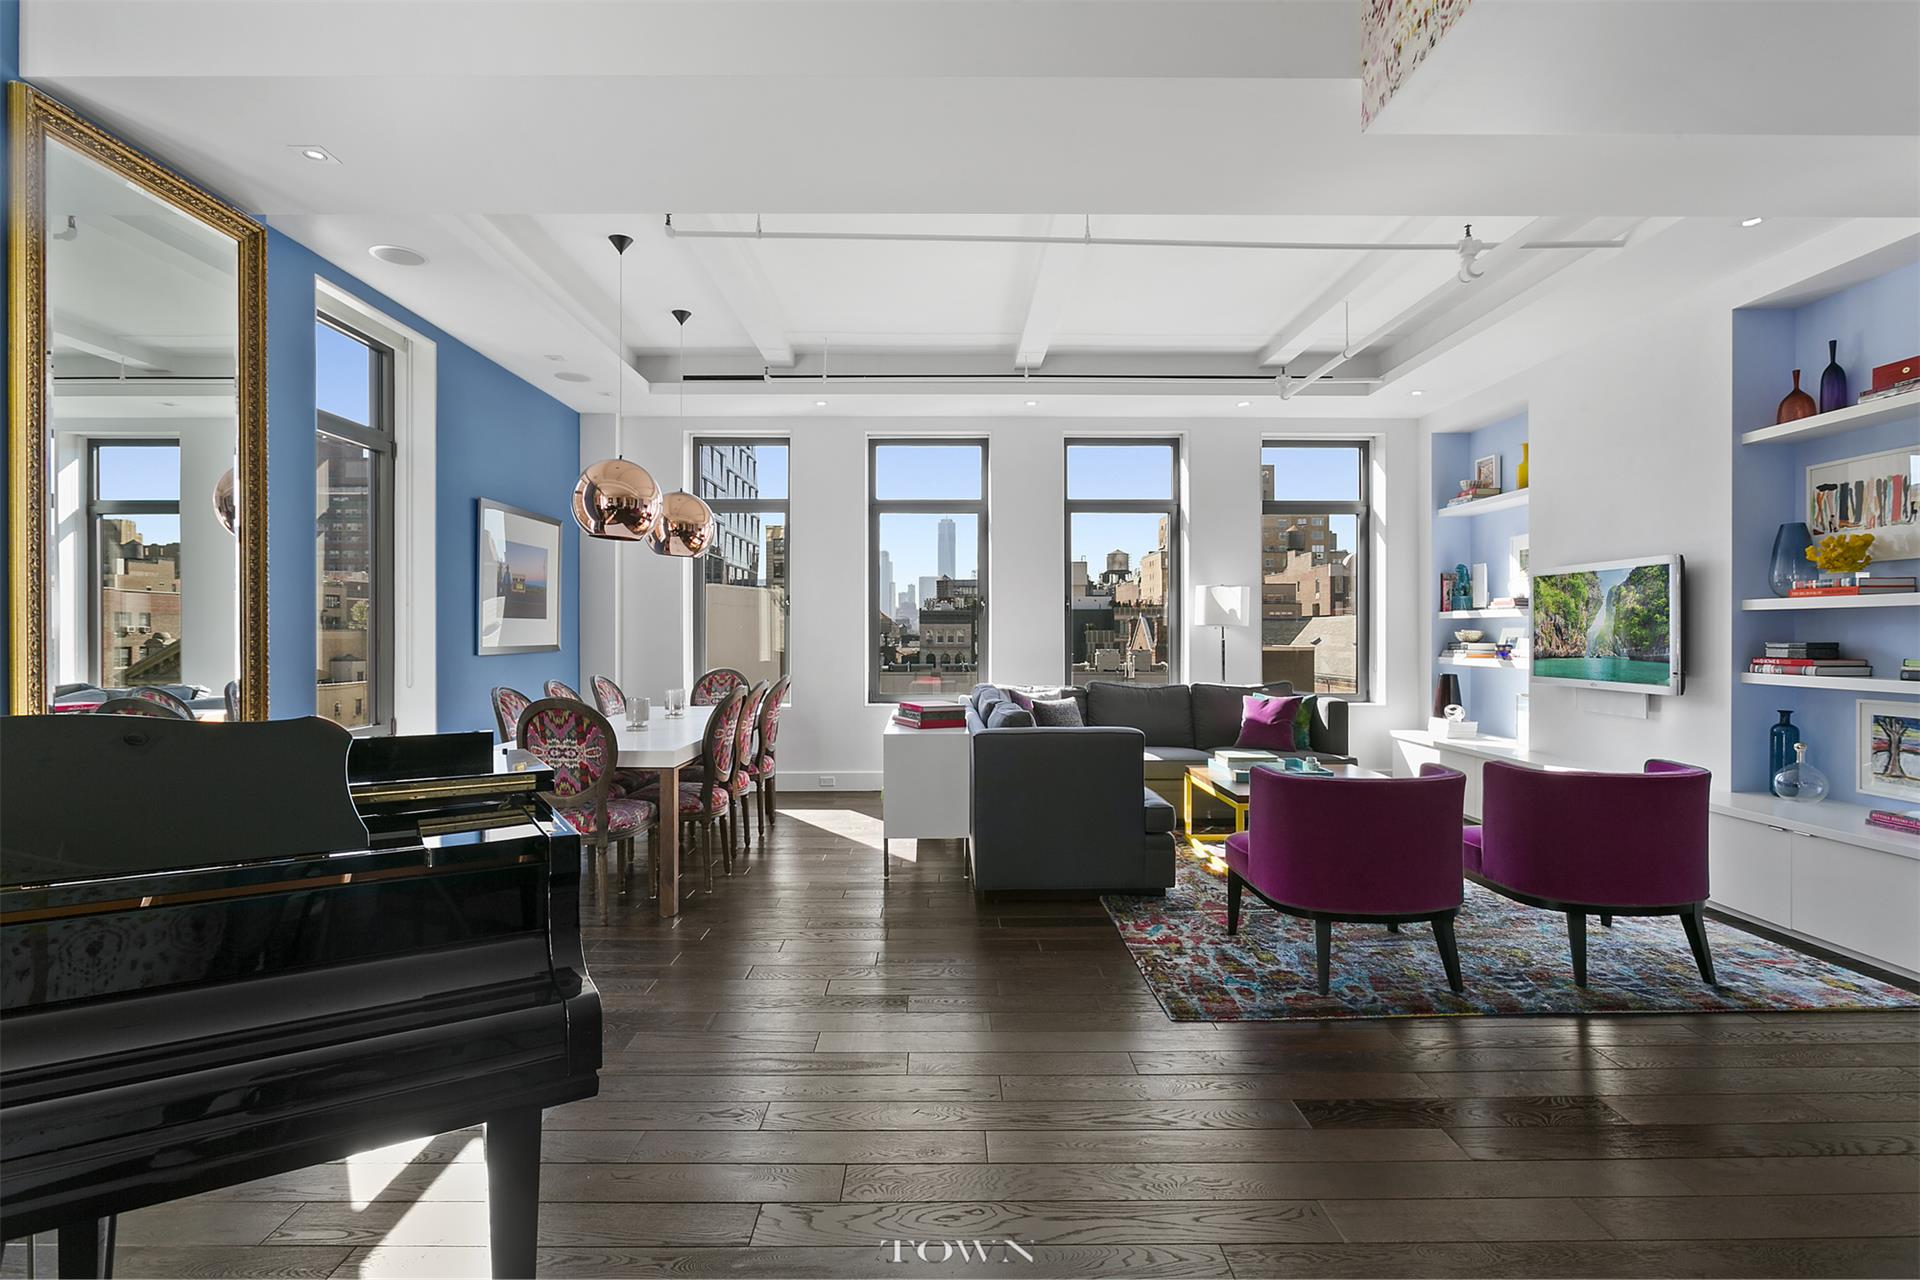 Additional photo for property listing at 40-42 West 17th Street, #8-B 40-42 West 17th Street New York, New York 10011 United States